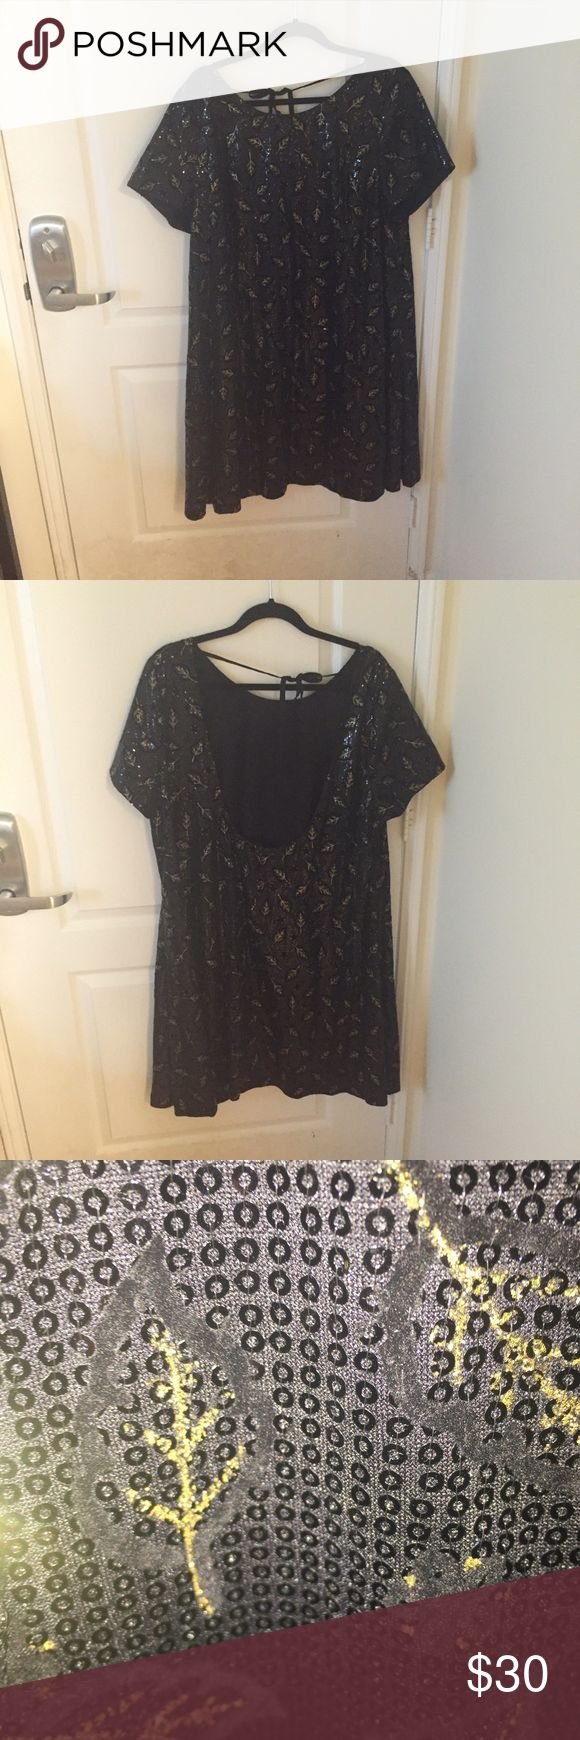 Sparkly Asos Dress Cute loose fitting dress with sequin details and gold leaf design. Never worn! ASOS Curve Dresses